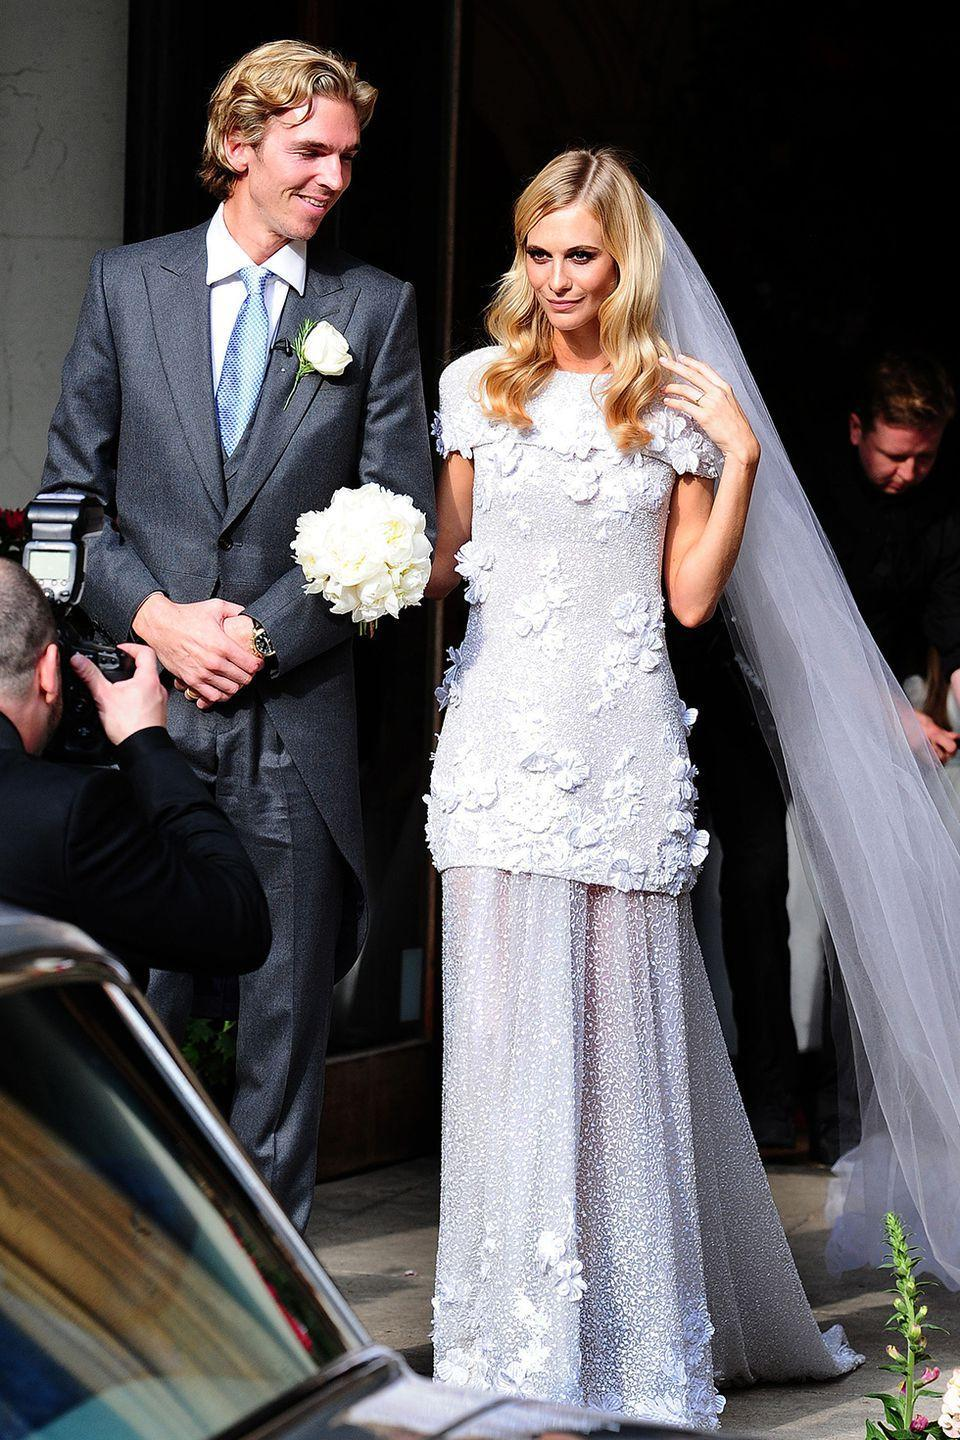 <p>Poppy married James Cook at St. Paul's Church in London. She went with a unique, '30s-inspired custom-made Chanel haute couture gown. Fun fact - Blake Lively wore a similar version of the dress back in 2009, but on the red carpet, not down the wedding aisle. </p>